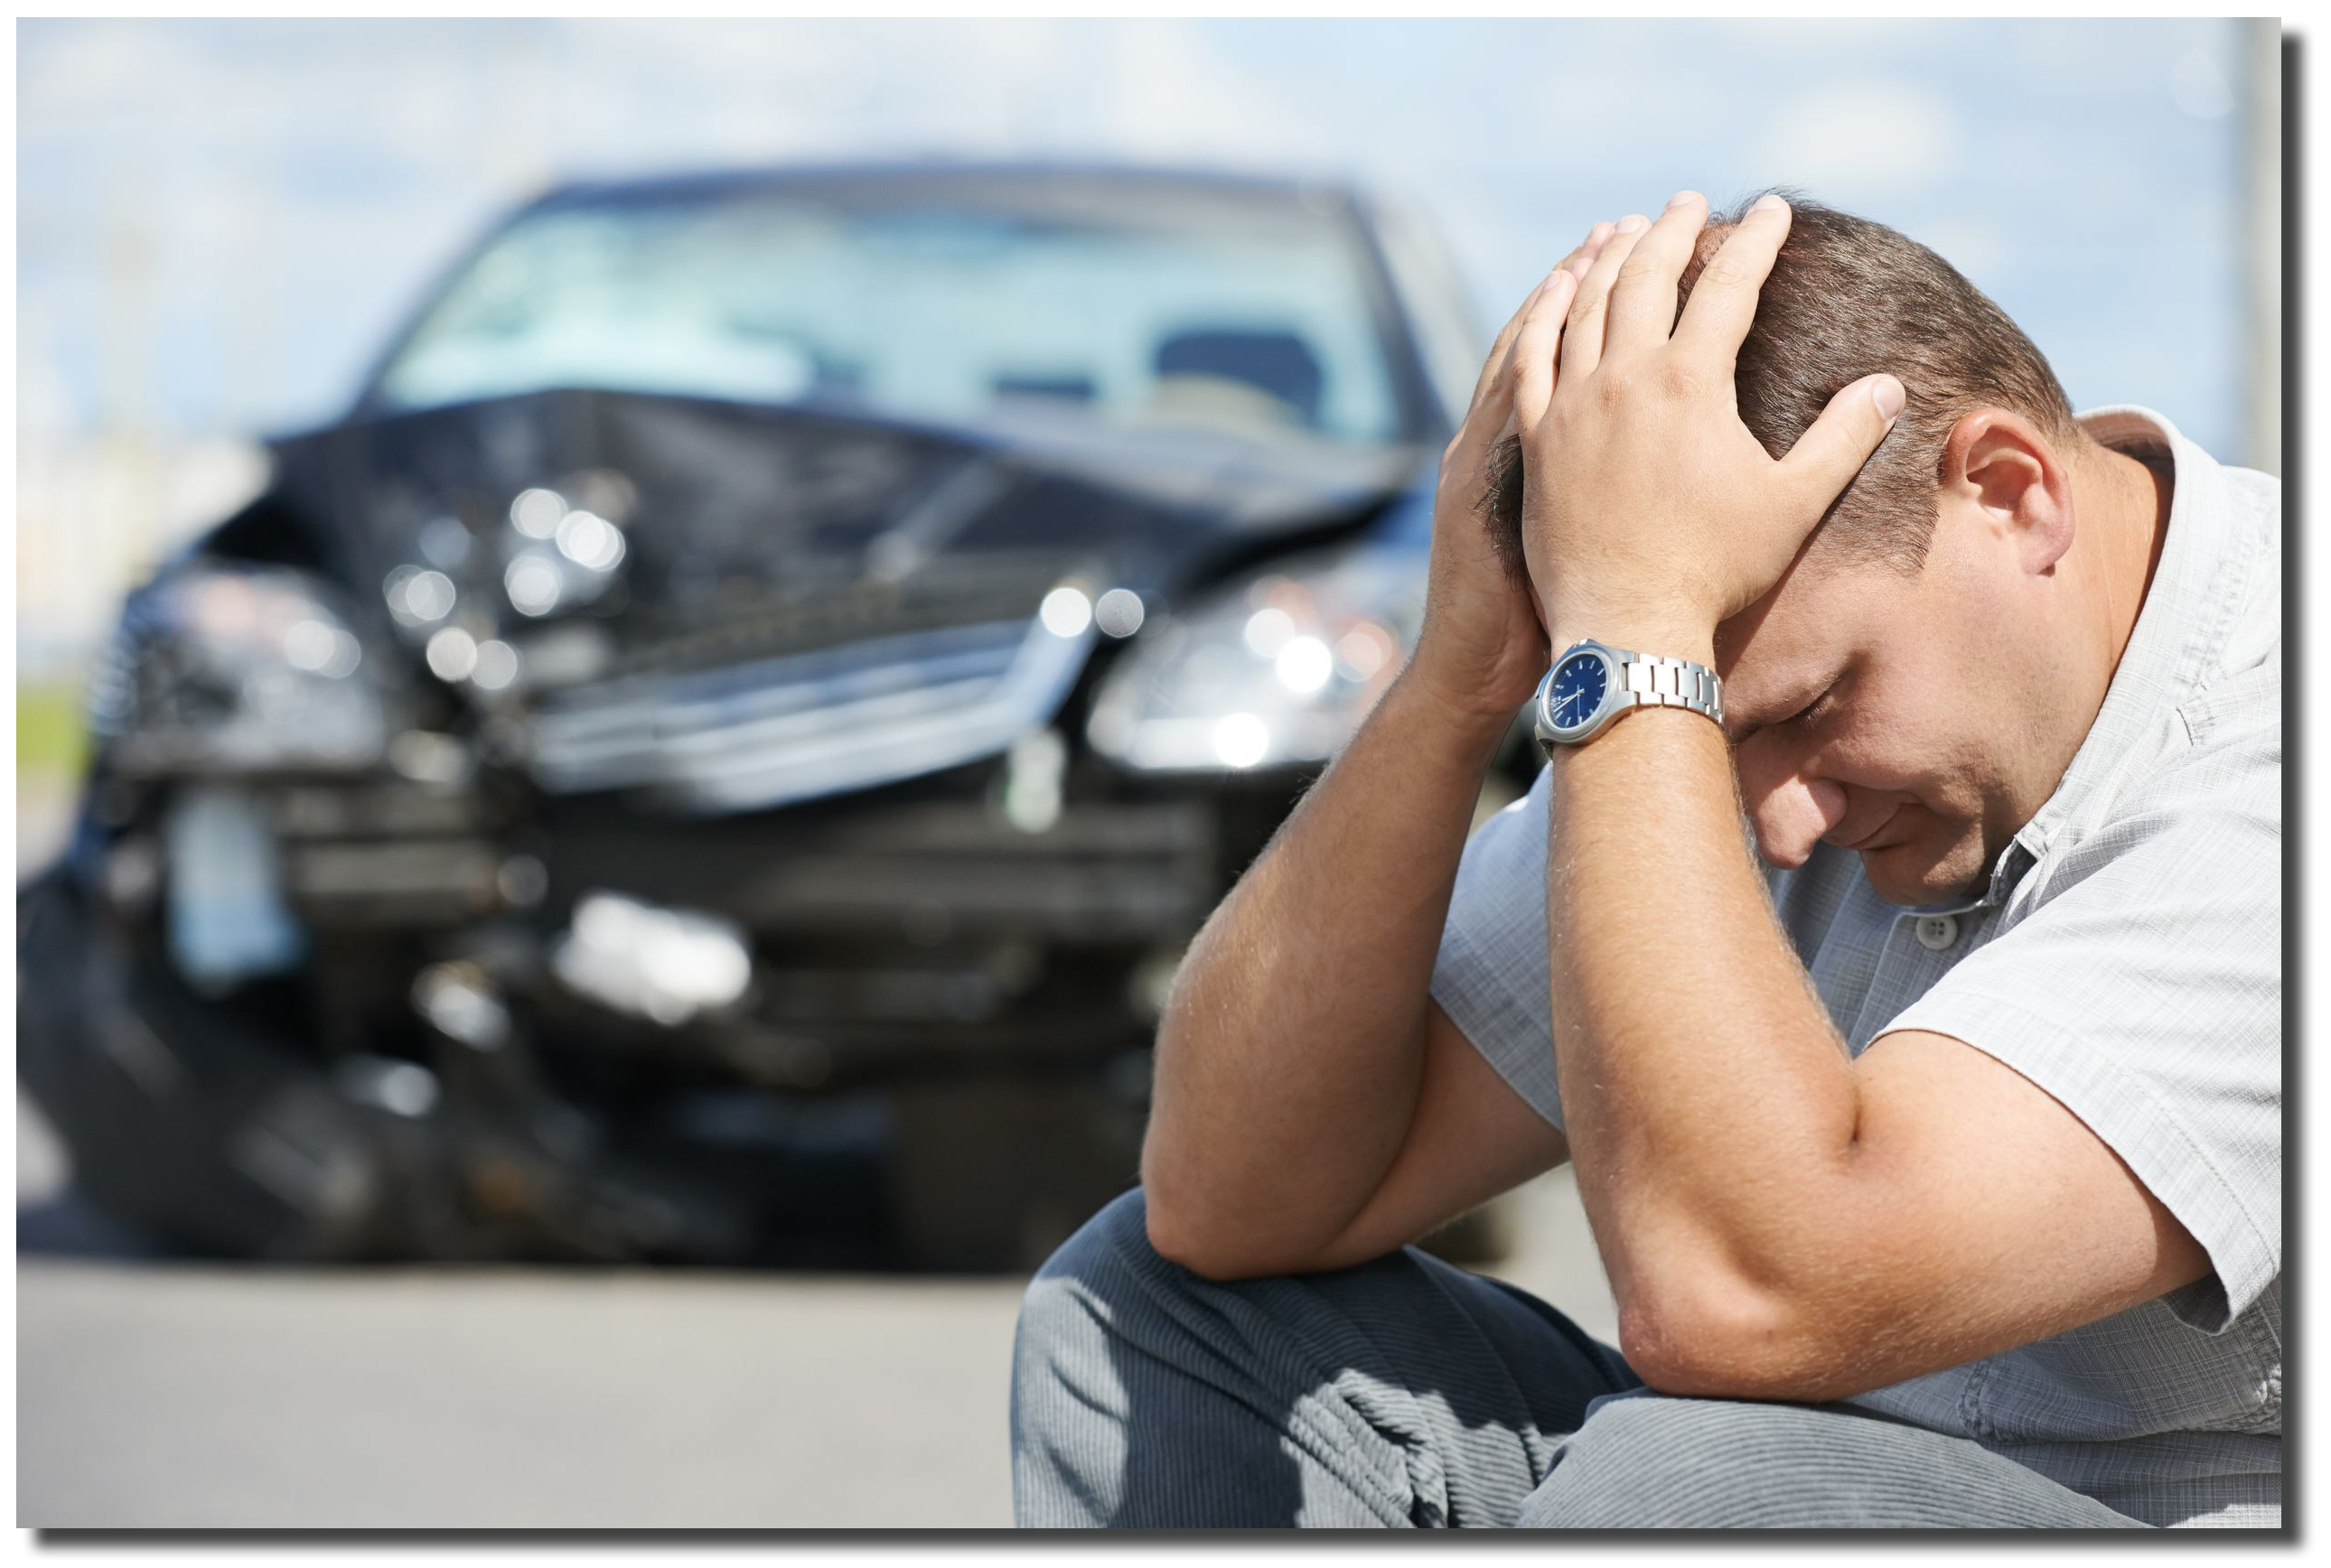 Faq - Car Accident Insurance Claim: Learning how to Negotiate